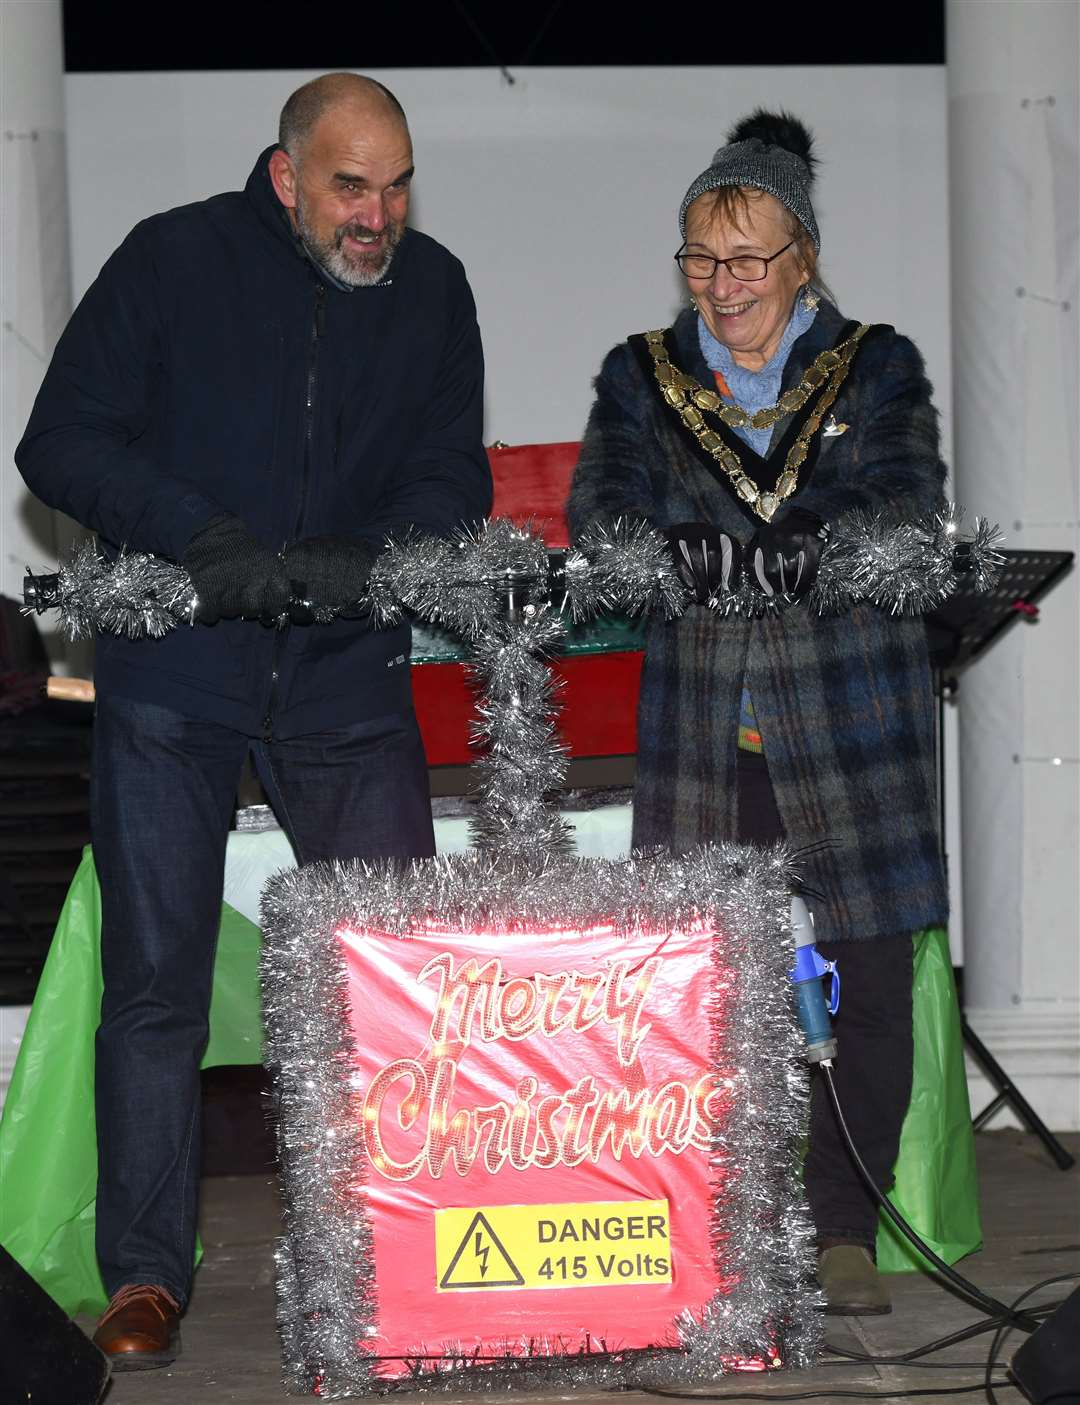 Colin Rigby and Swaffham mayor Jill Skinner turn on the lights